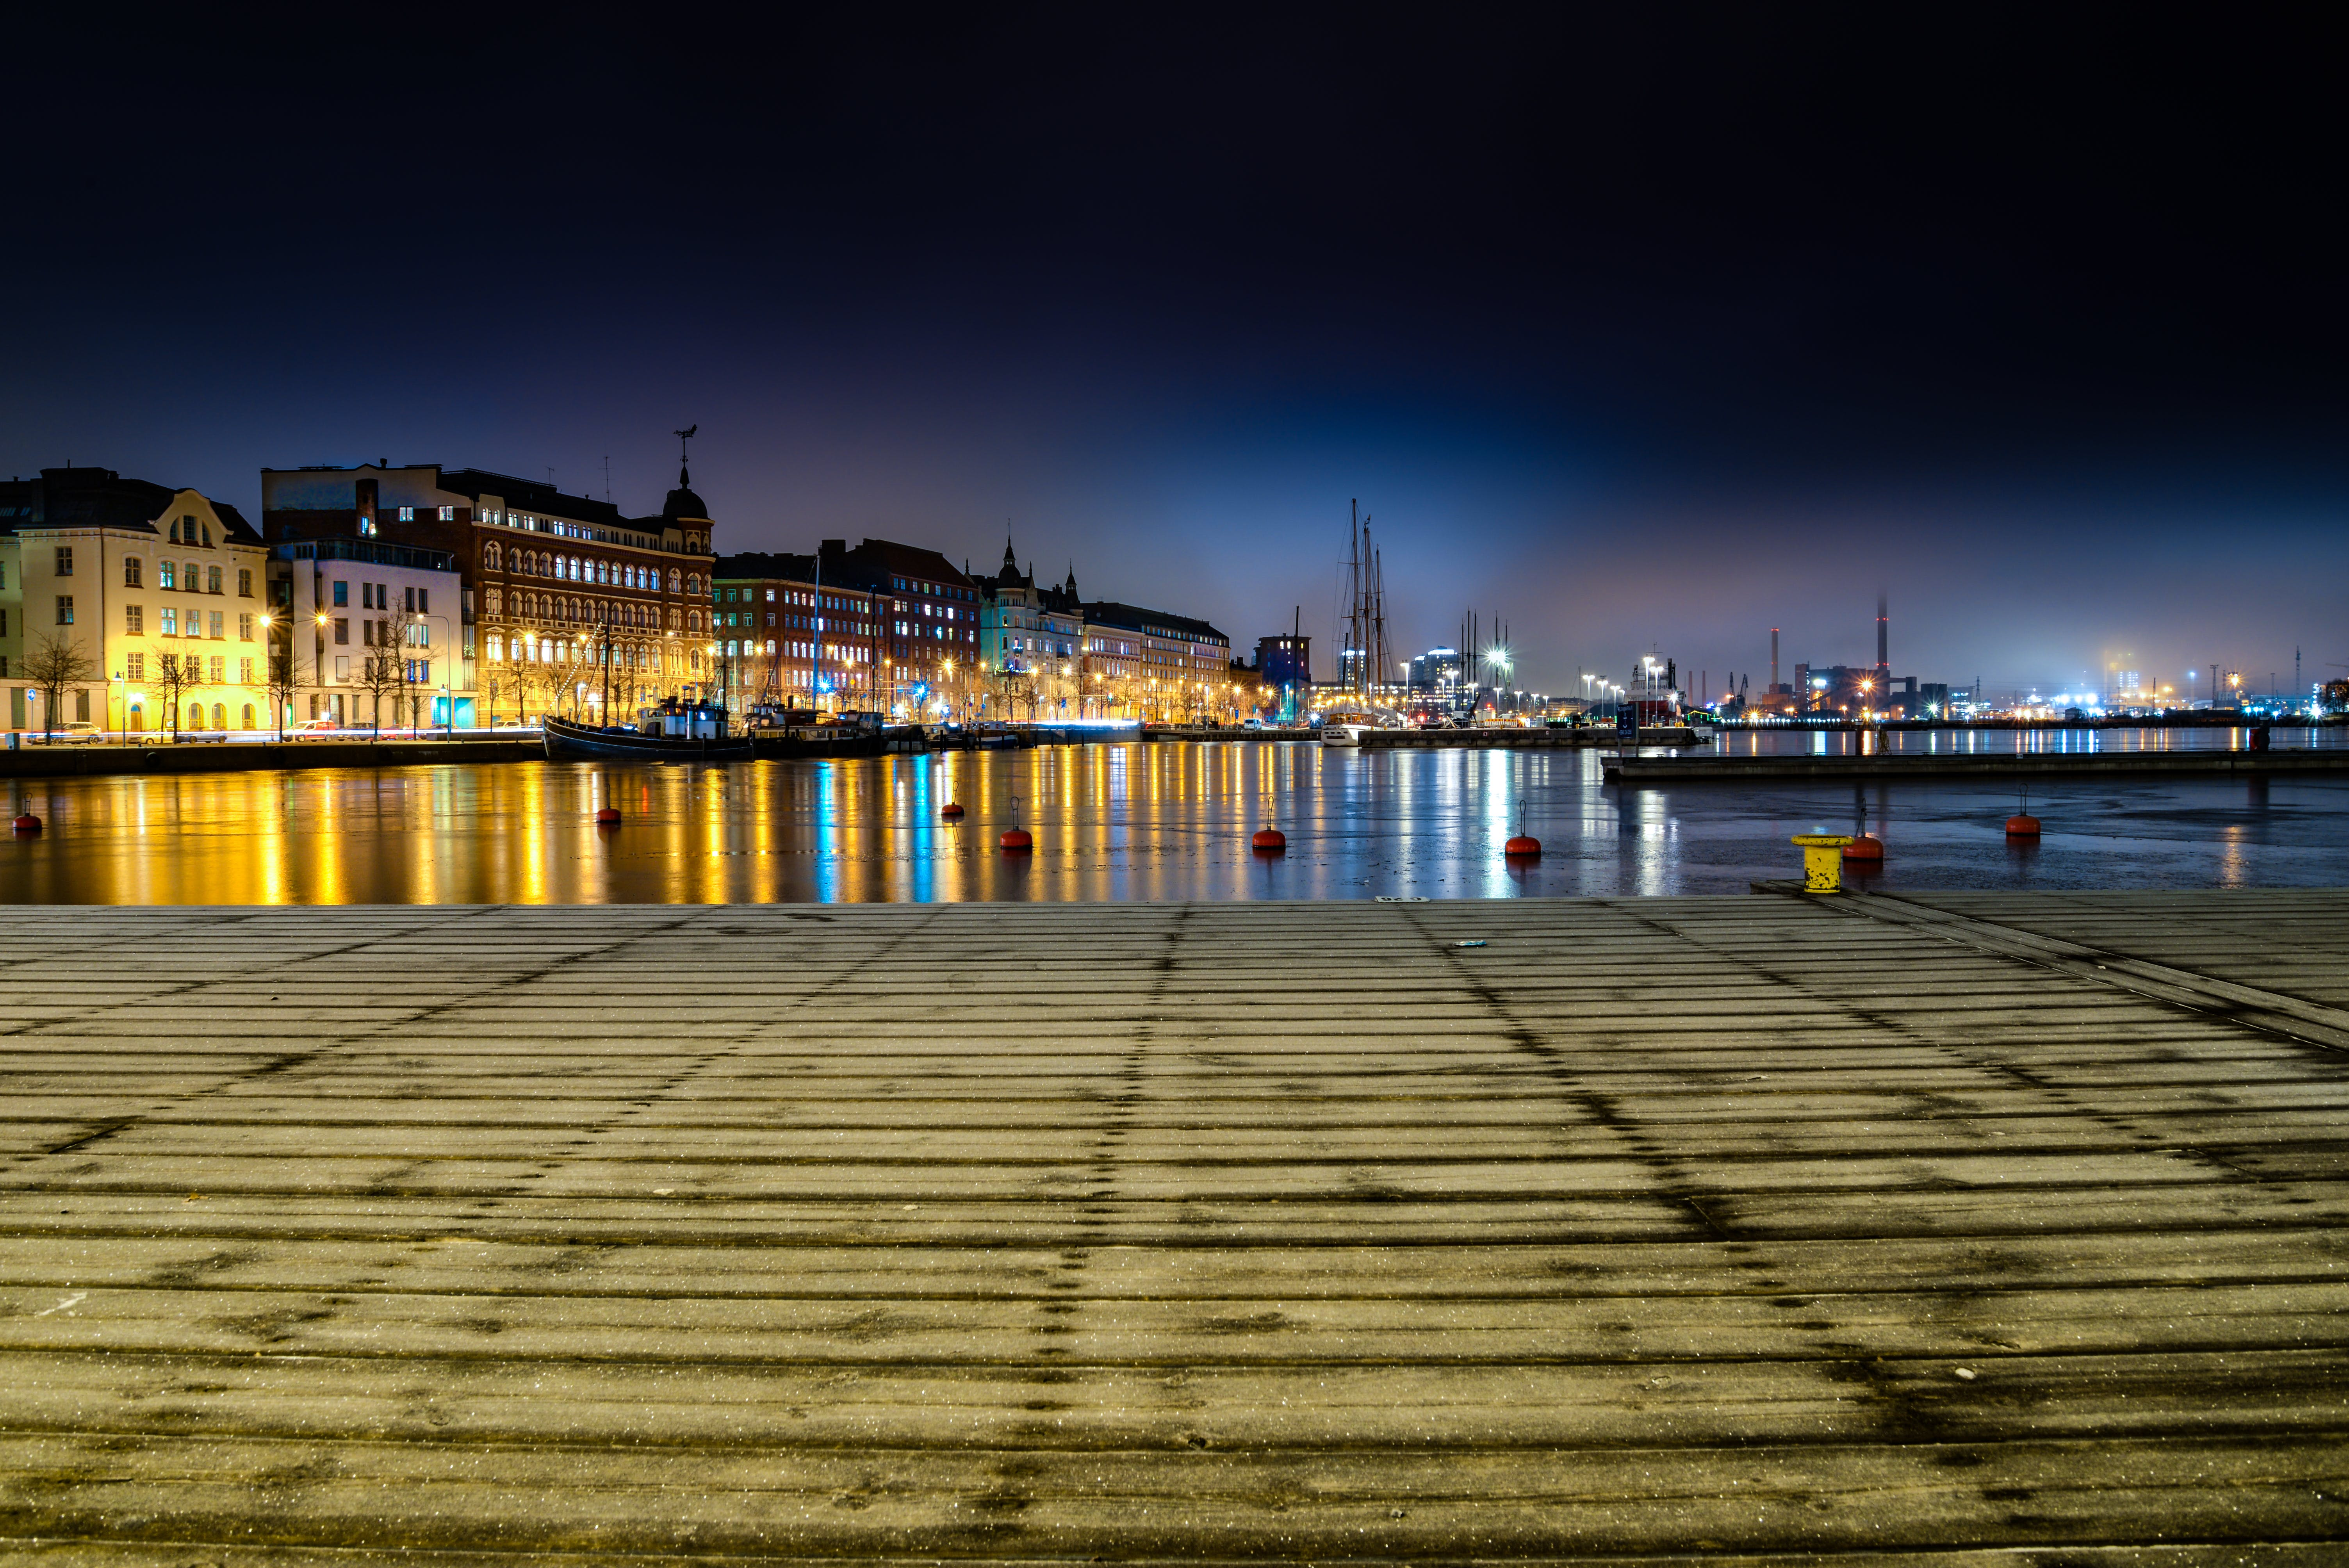 Panoramic Photo of City Buildings during Night Time